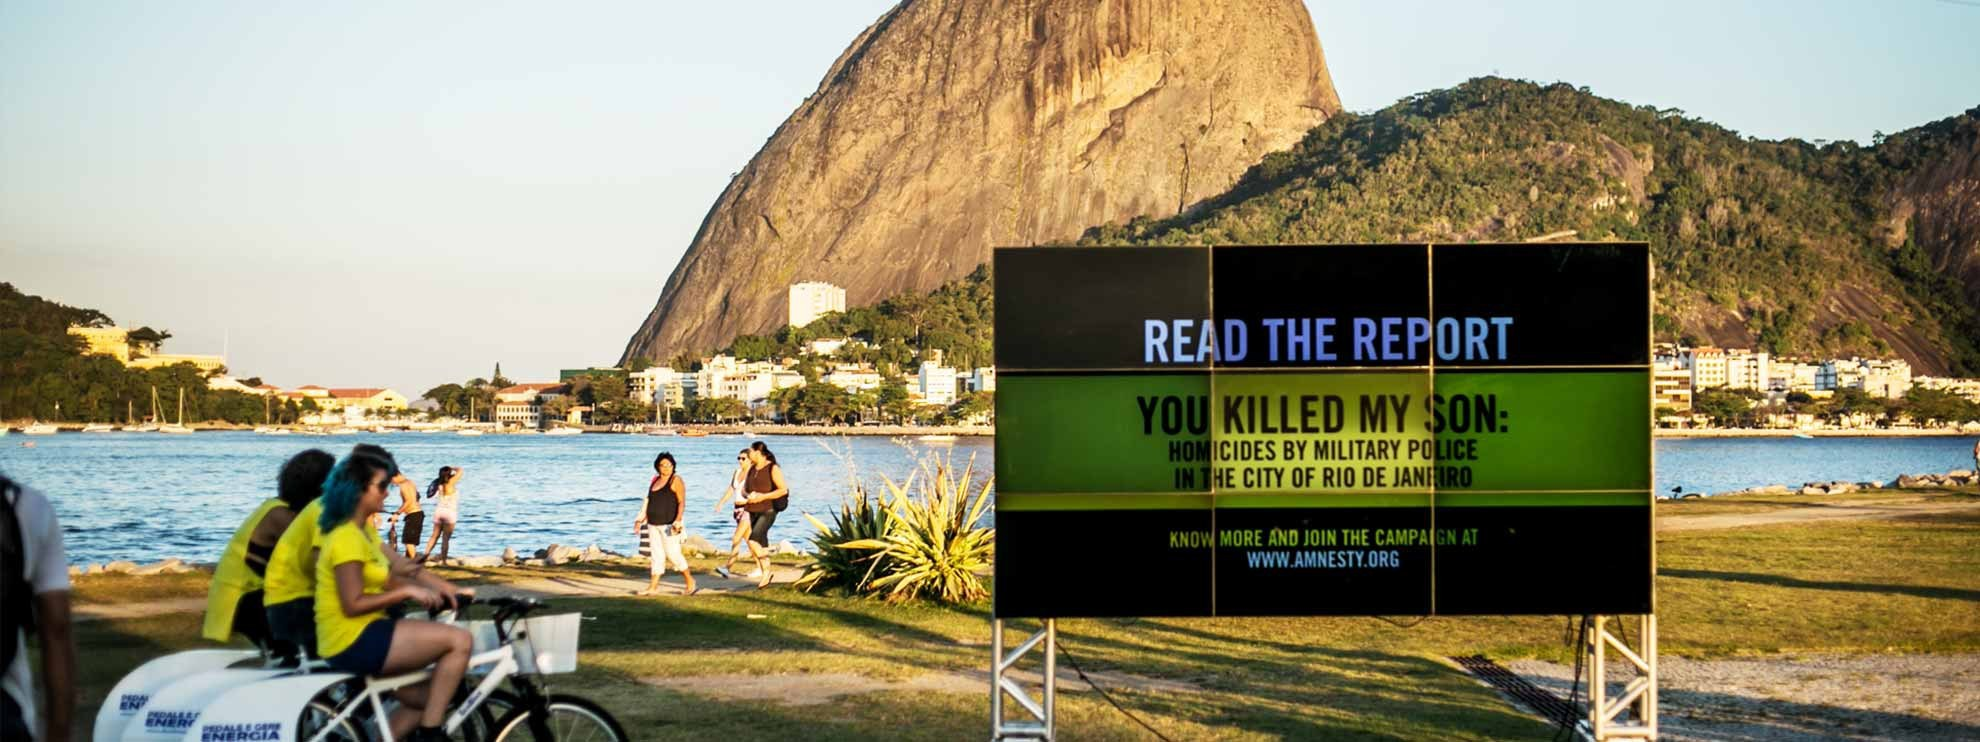 Action lors de la publication du rapport d'Amnesty: «You killed my son - Homicides by military police in the city of Rio de Janeiro» © Thiago Dezan/ Amnistia Internacional Brasil